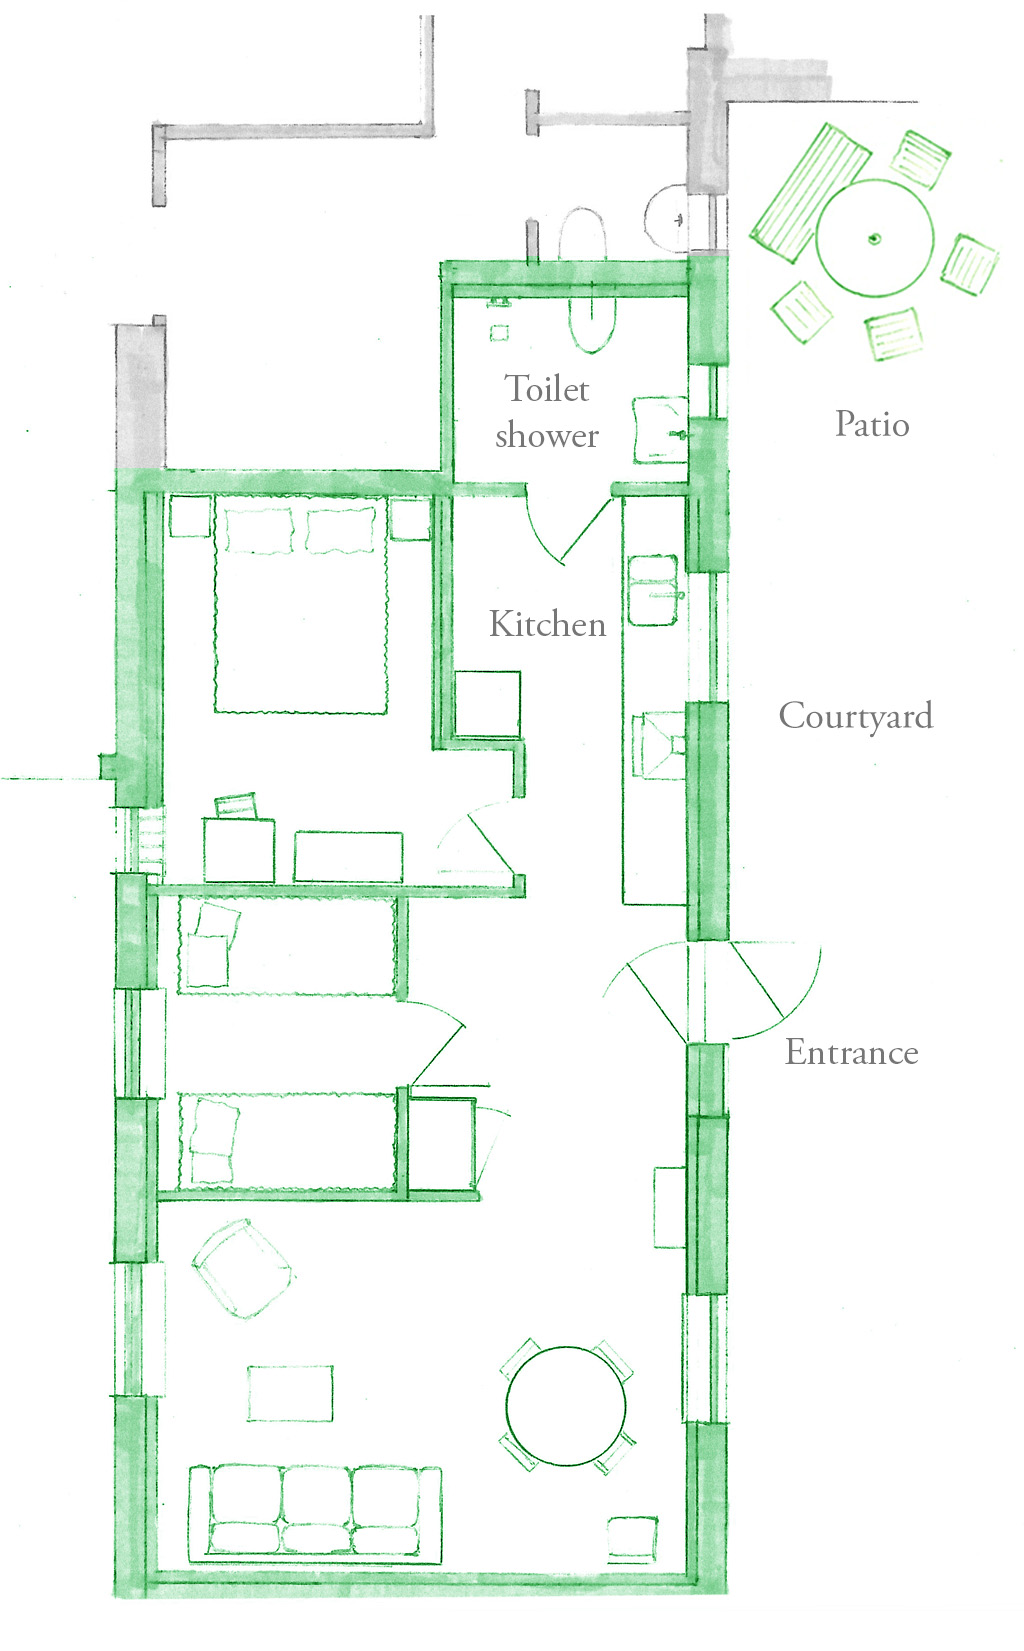 Interior planning for the small courtyard apartment.